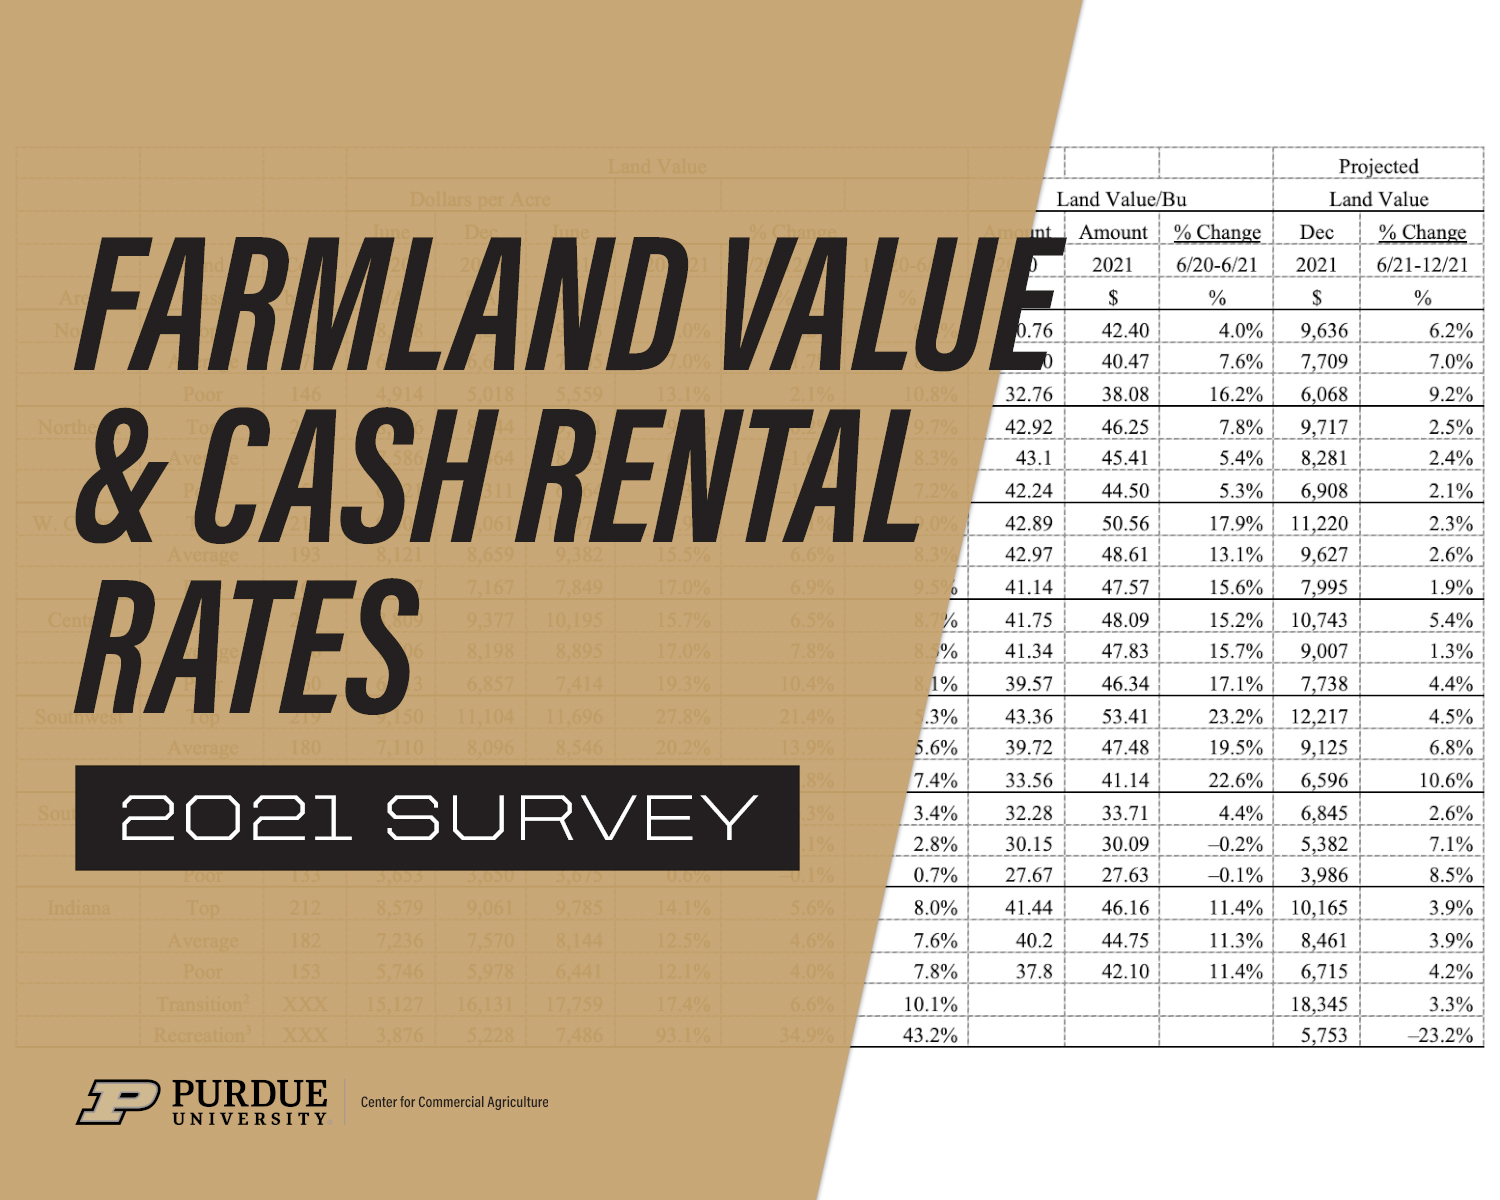 Indiana Farmland Prices Hit New Record High in 2021, Purdue Land Values and Cash Rents Survey